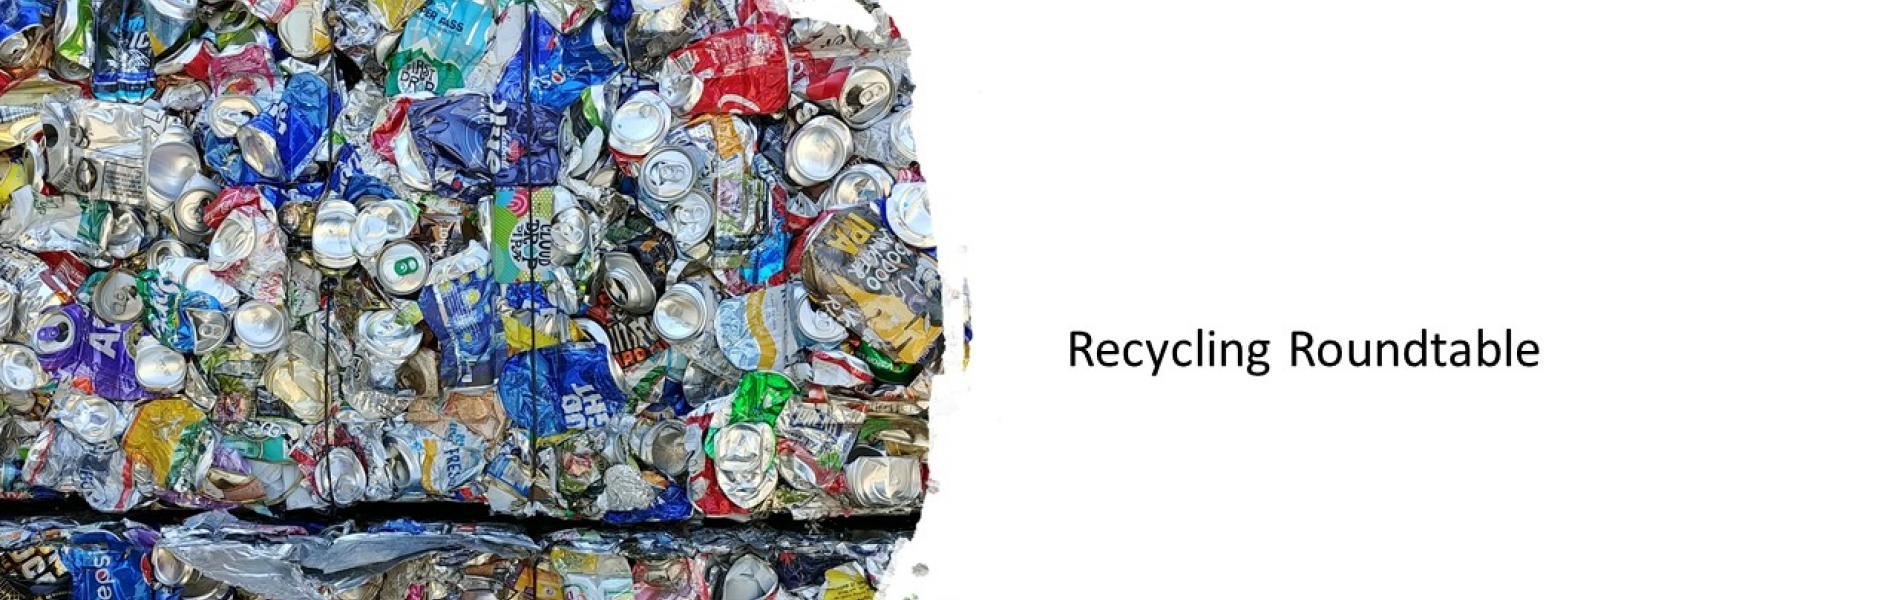 Recycling Roundtable